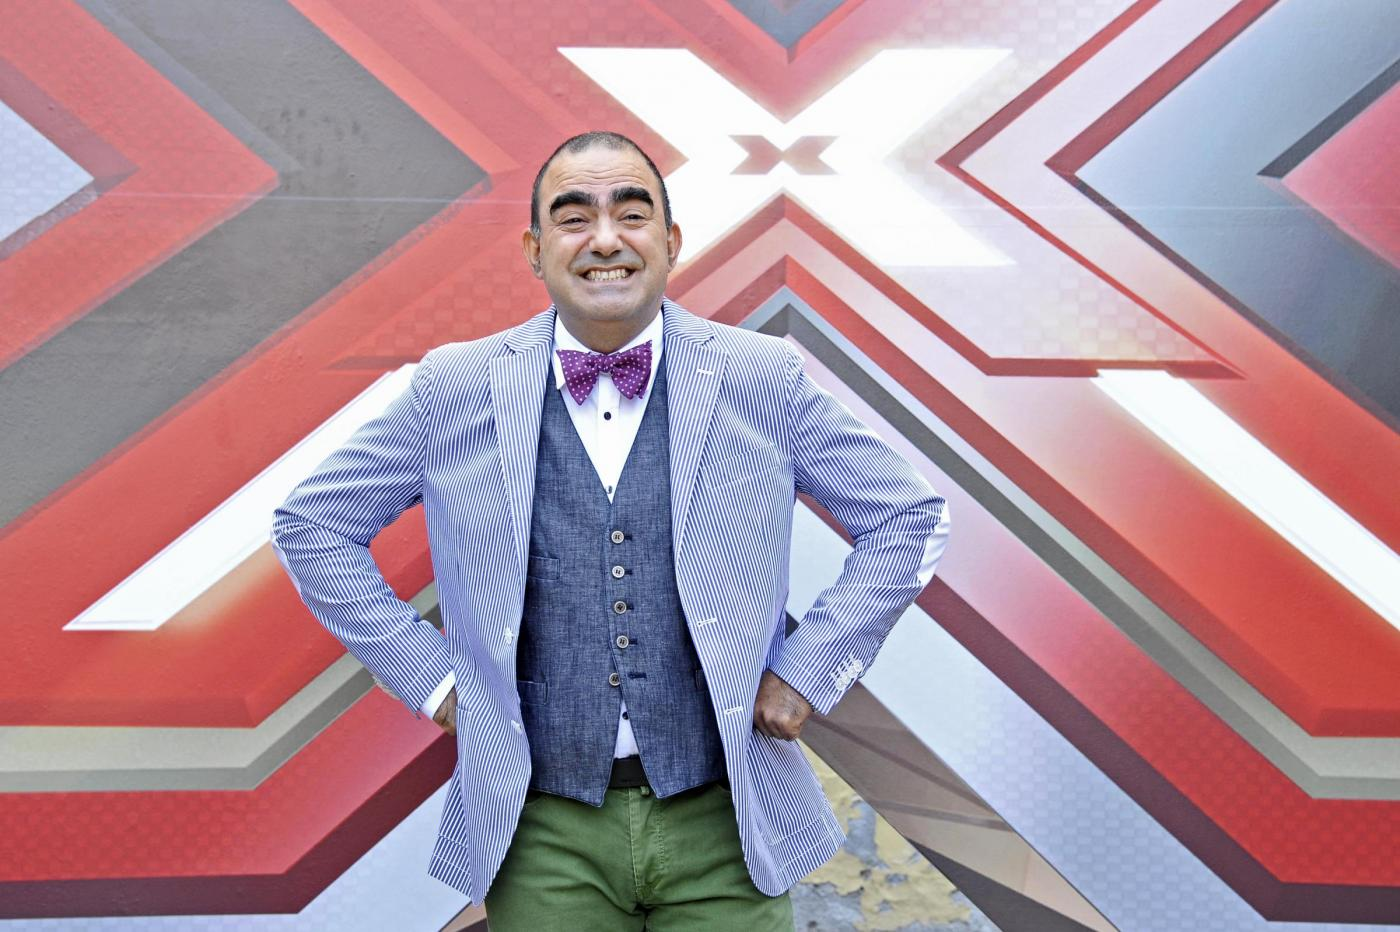 X Factor 2013, torna il talent show musicale